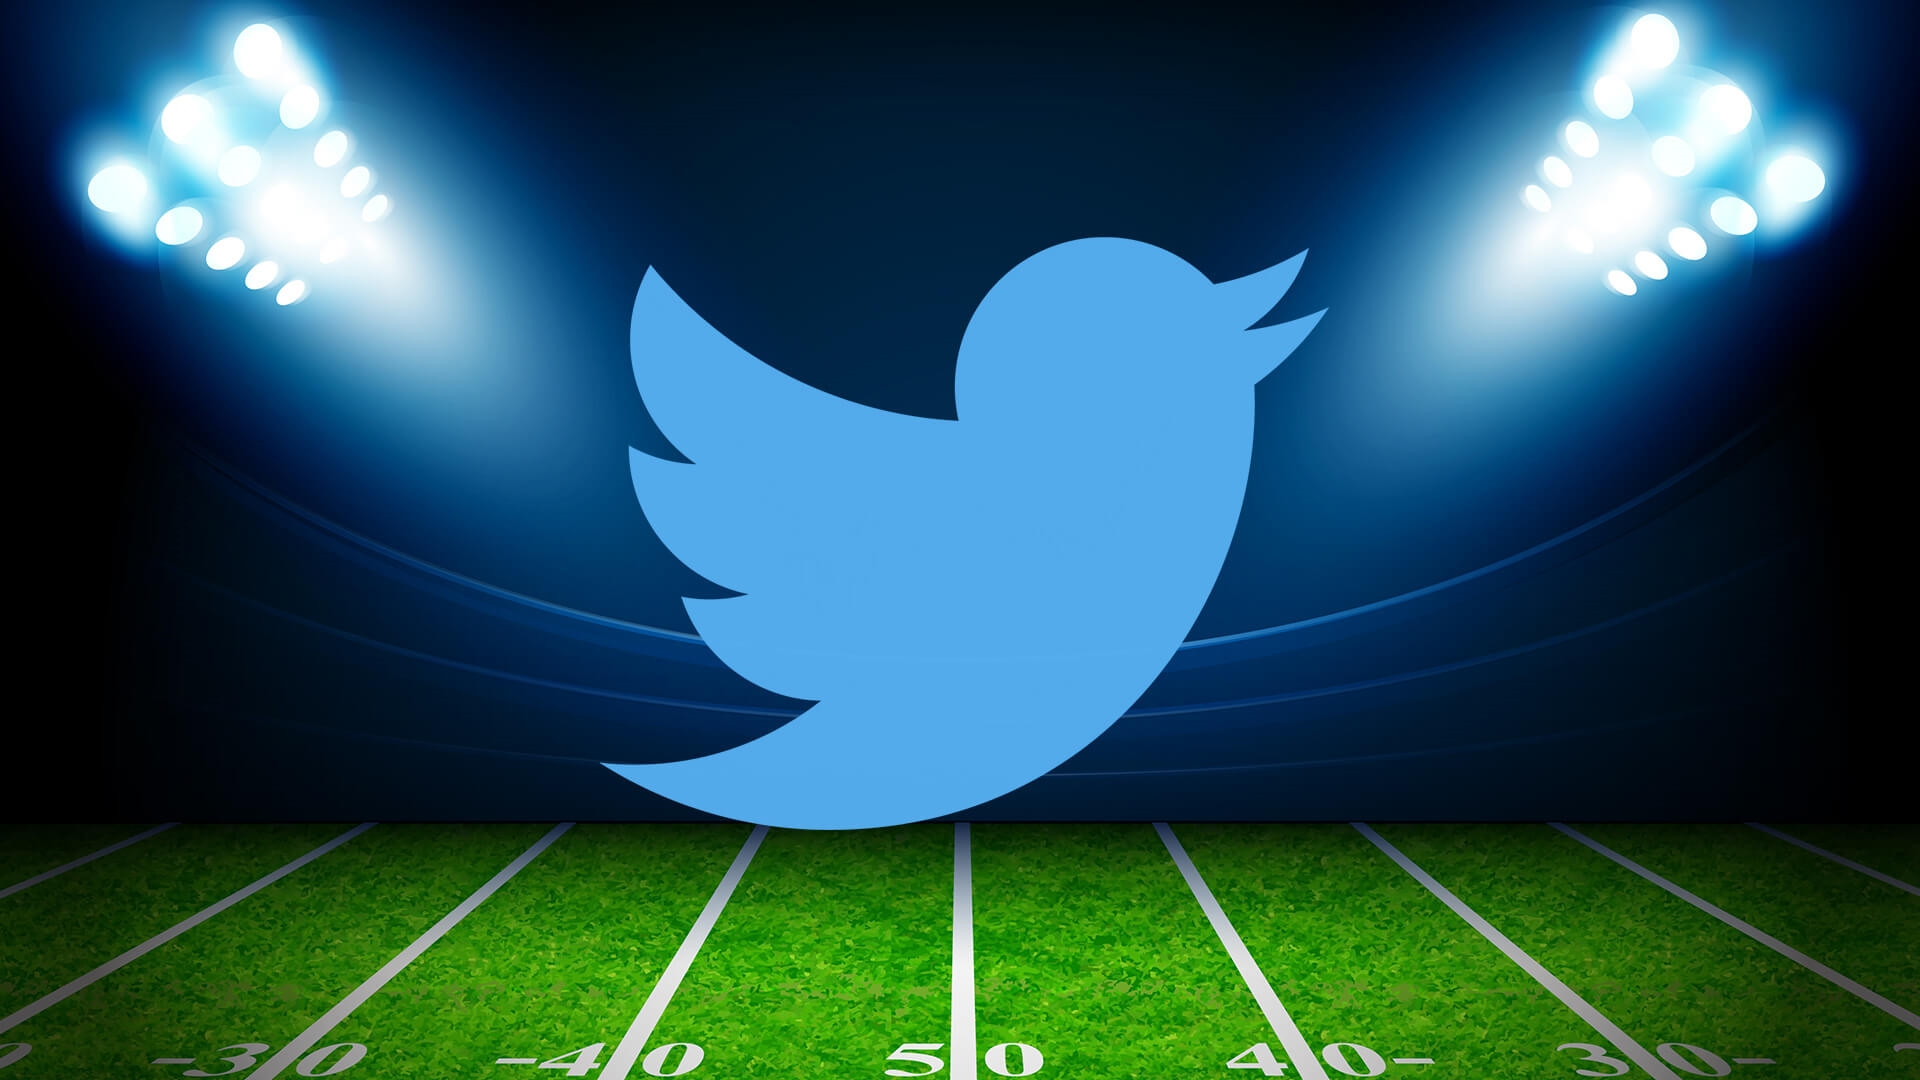 Twitter's #BrandBowl53 slated for Super Bowl LIII, gives marketers something to compete for | DeviceDaily.com